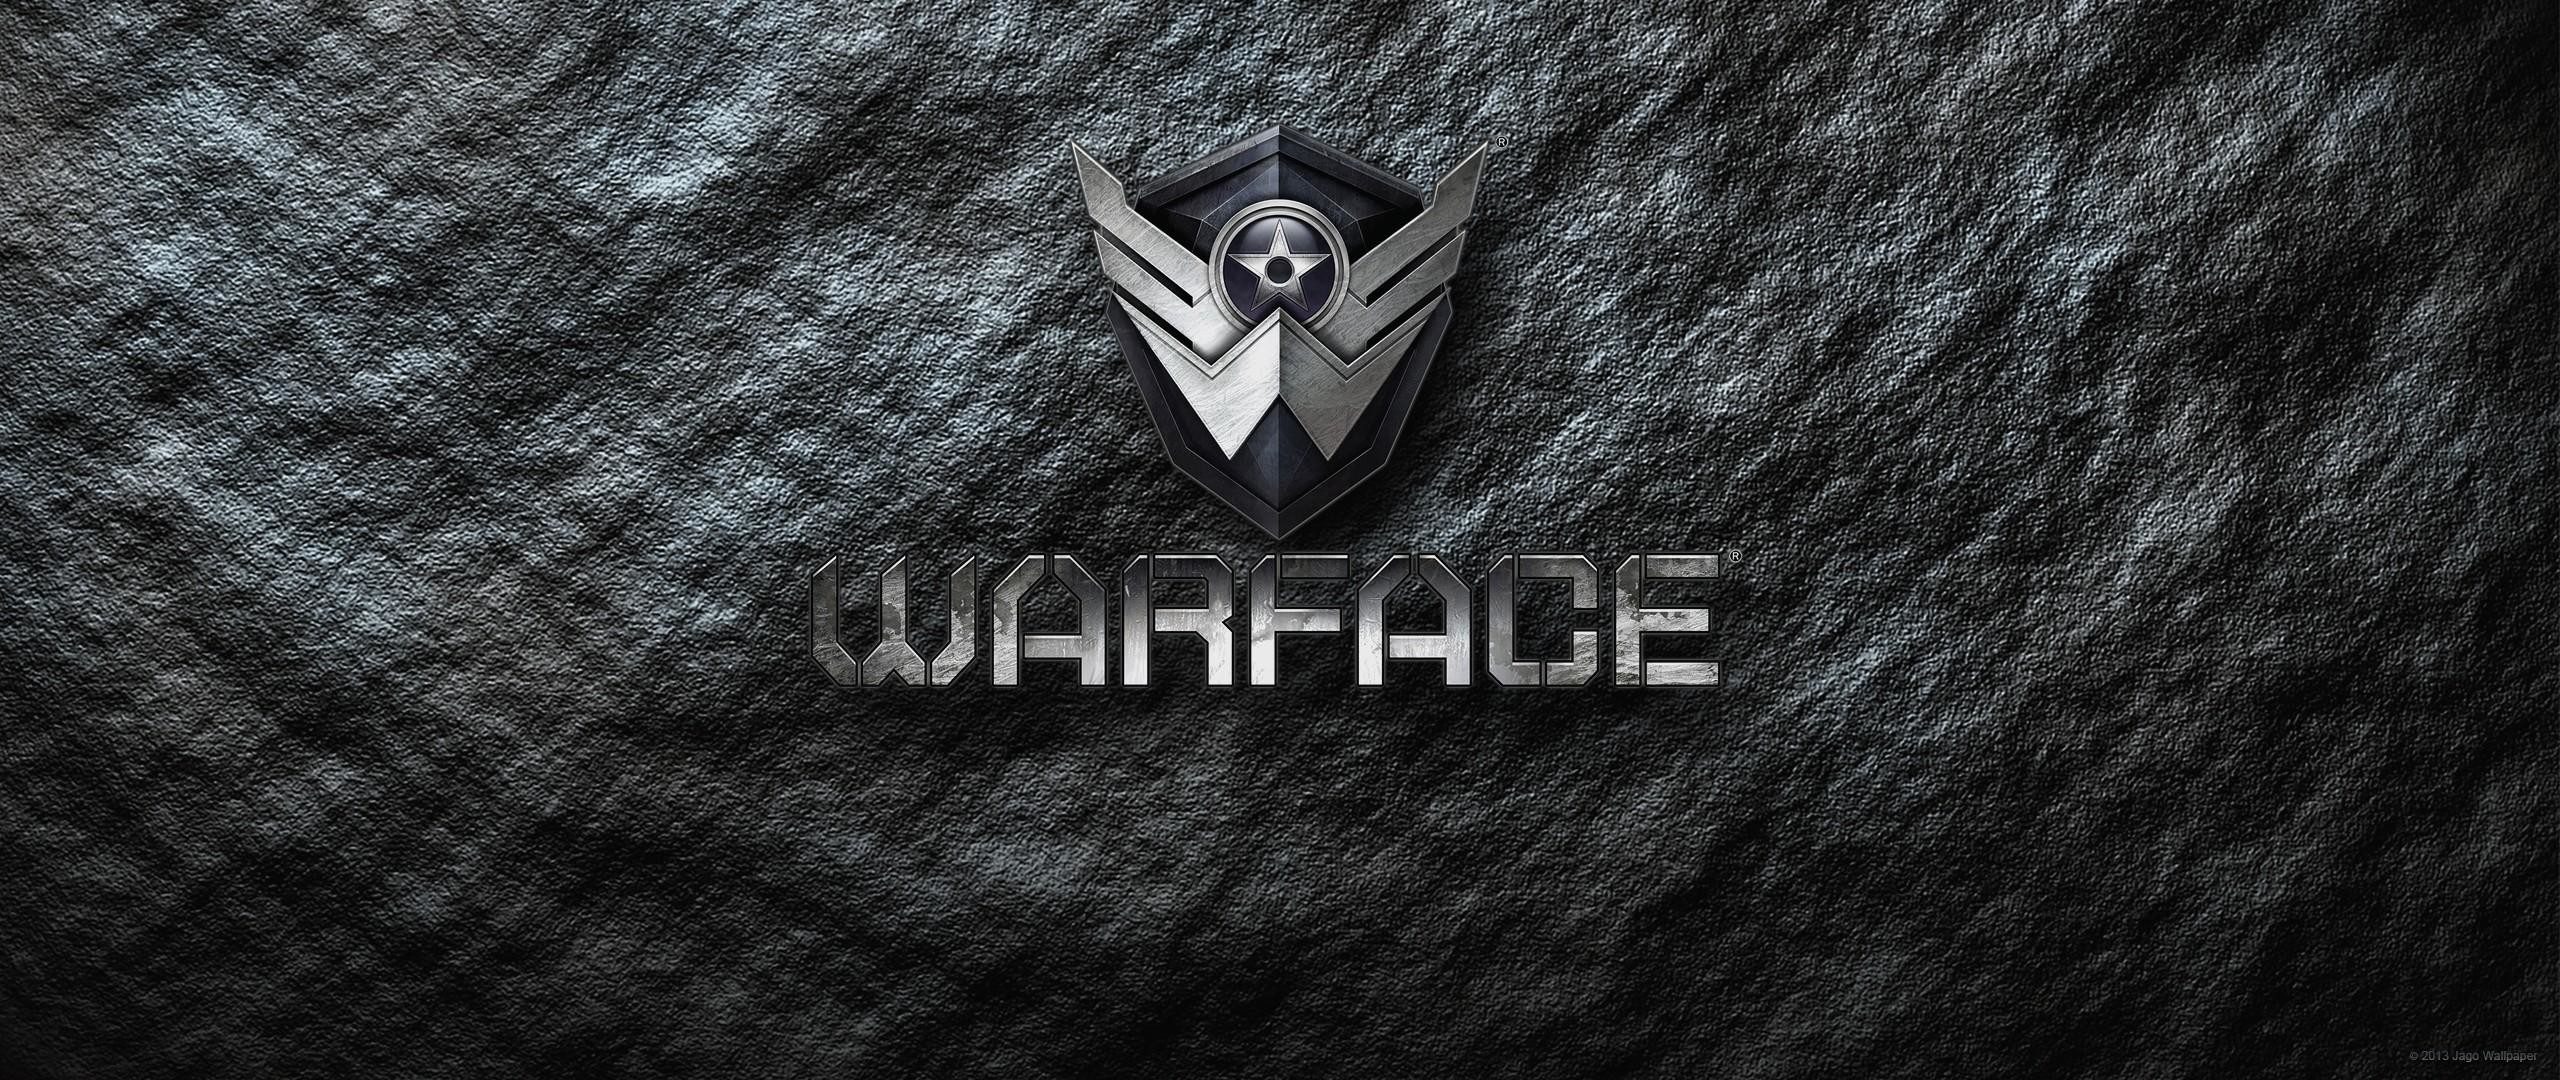 2560x1080 Warface wallpapers for iphone